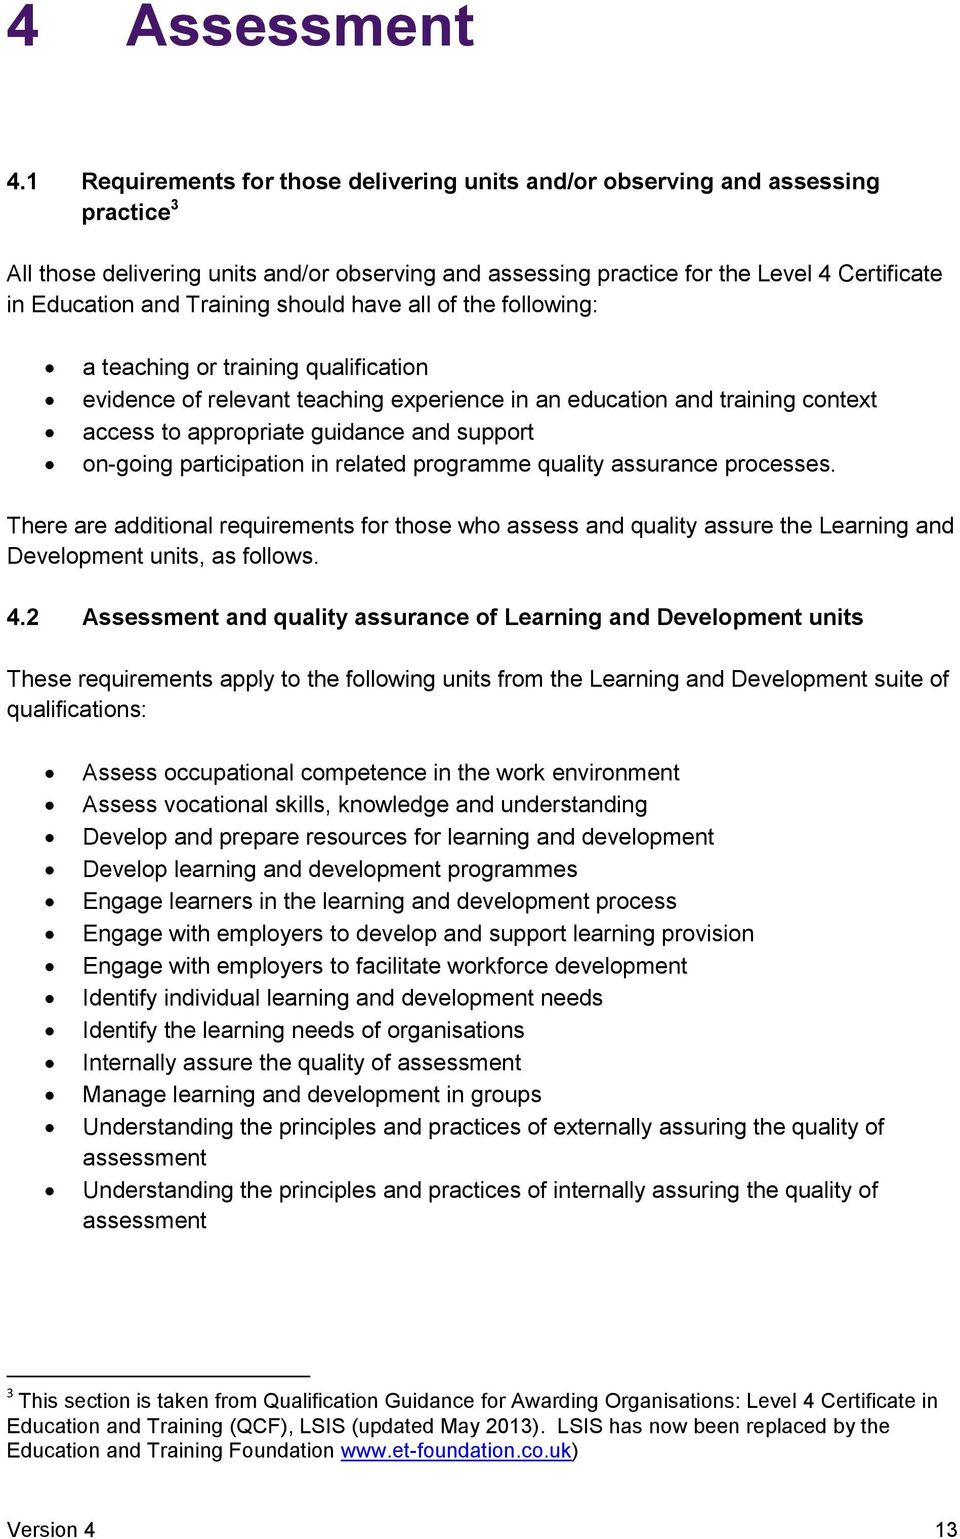 Qualification Handbook Level 4 Certificate In Education And